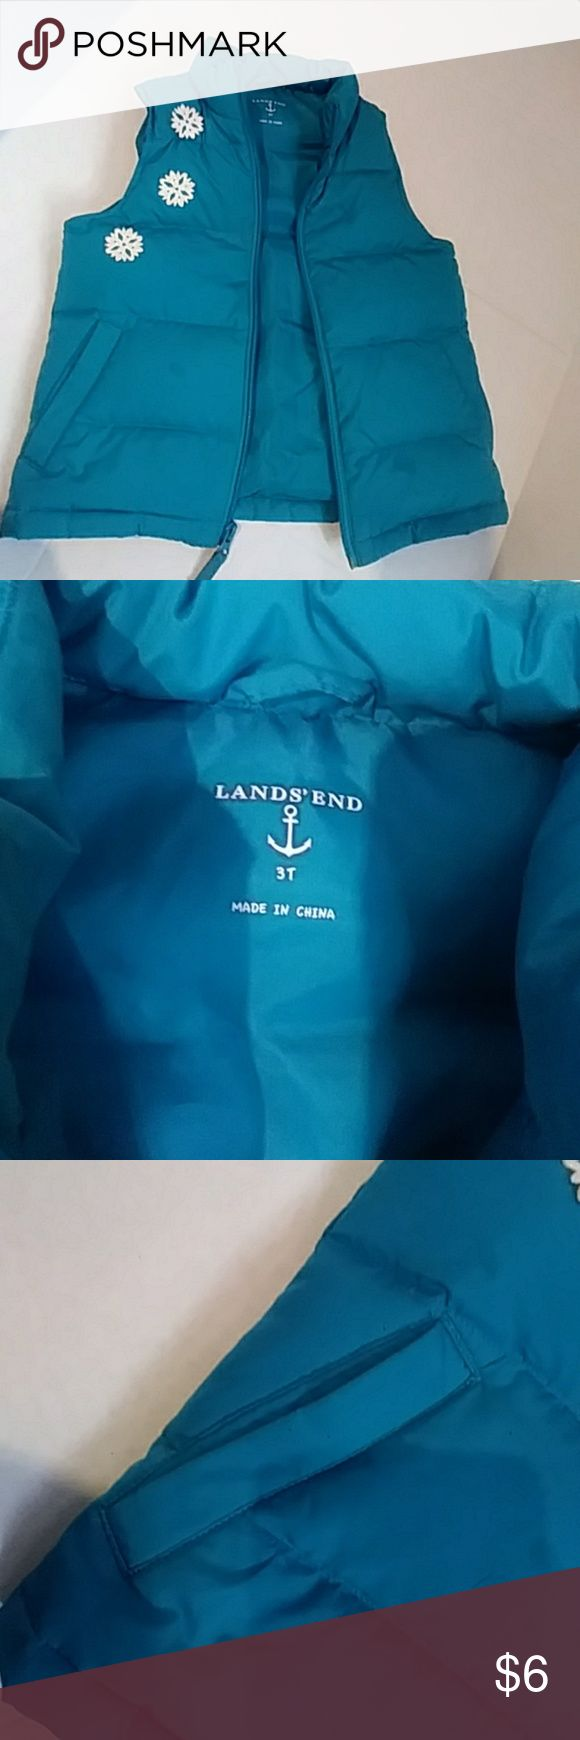 Girls LANDS END puffer vest size 3t Insanely cute girls LANDS END turquoise colored puffer vest with sparkly snowflake details. Sure to keep your little one warm in the fall months Lands' End Jackets & Coats Vests